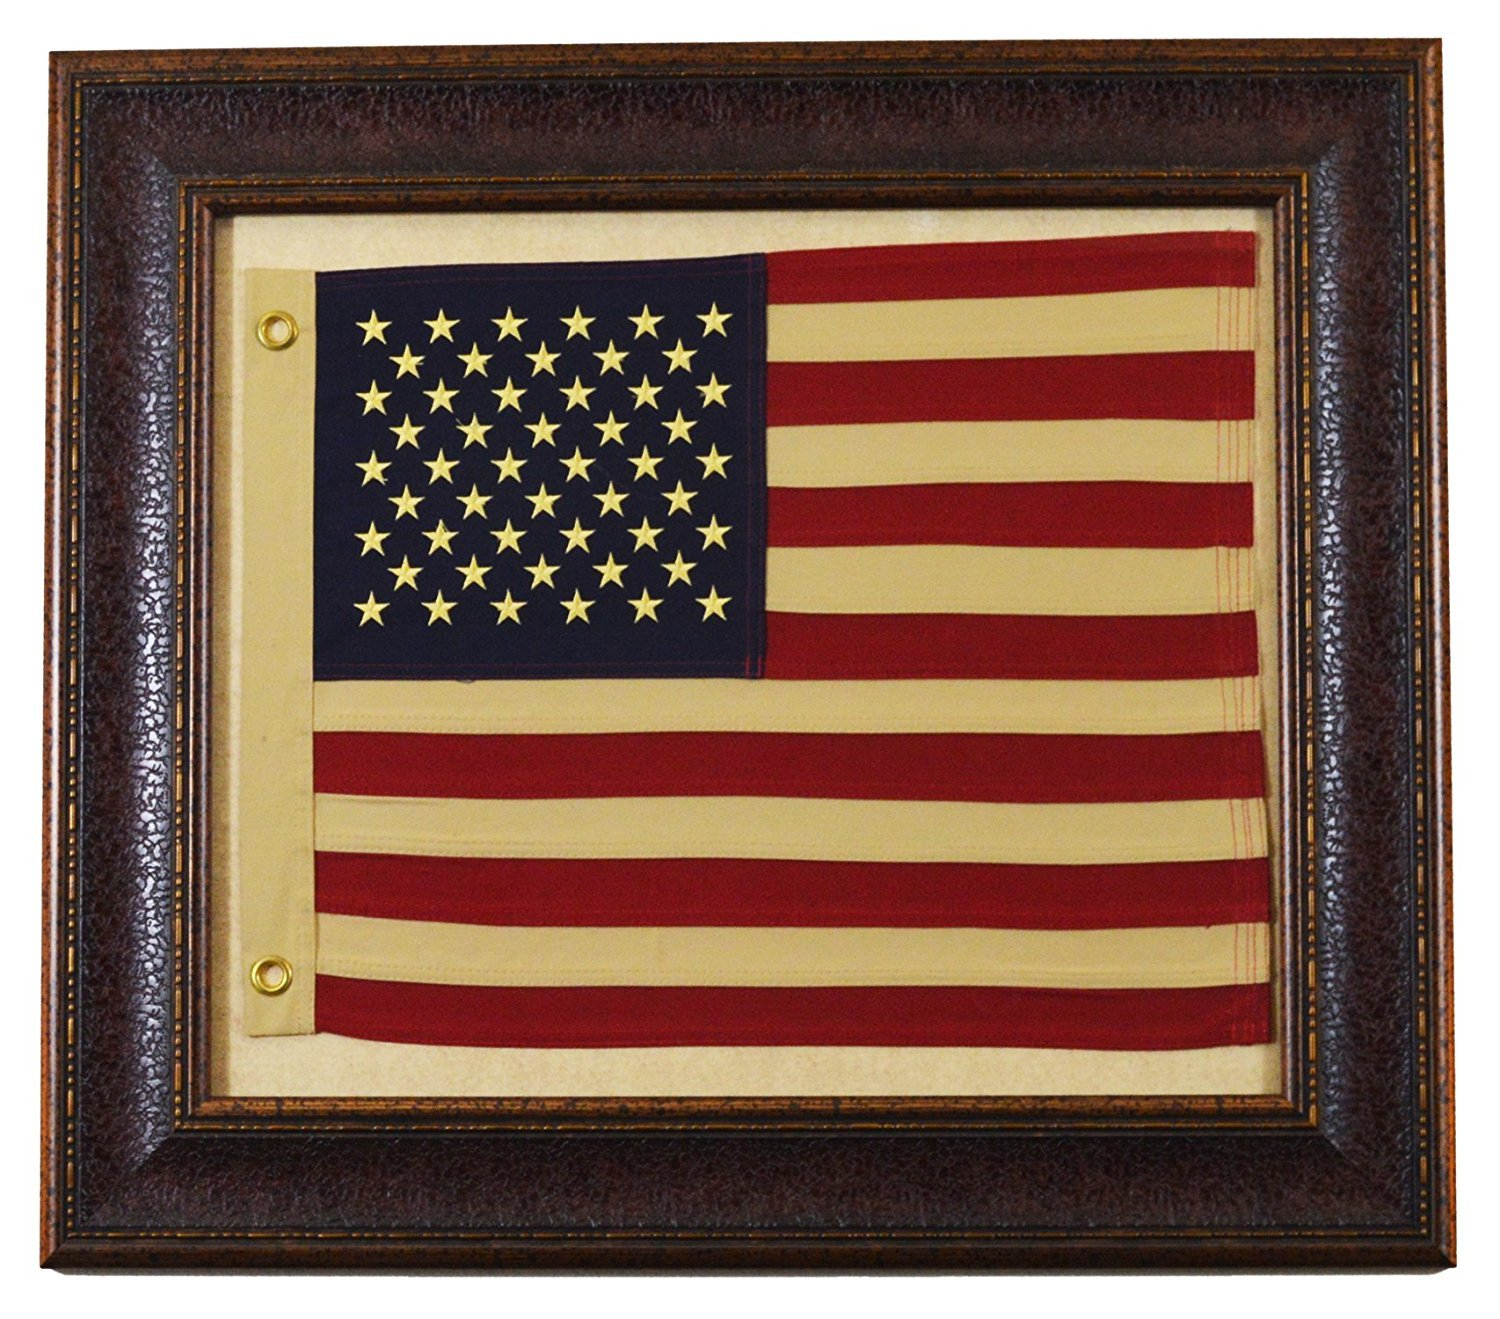 Framed American USA Flag with Aged Look - Rustic Western Wall Art Decor